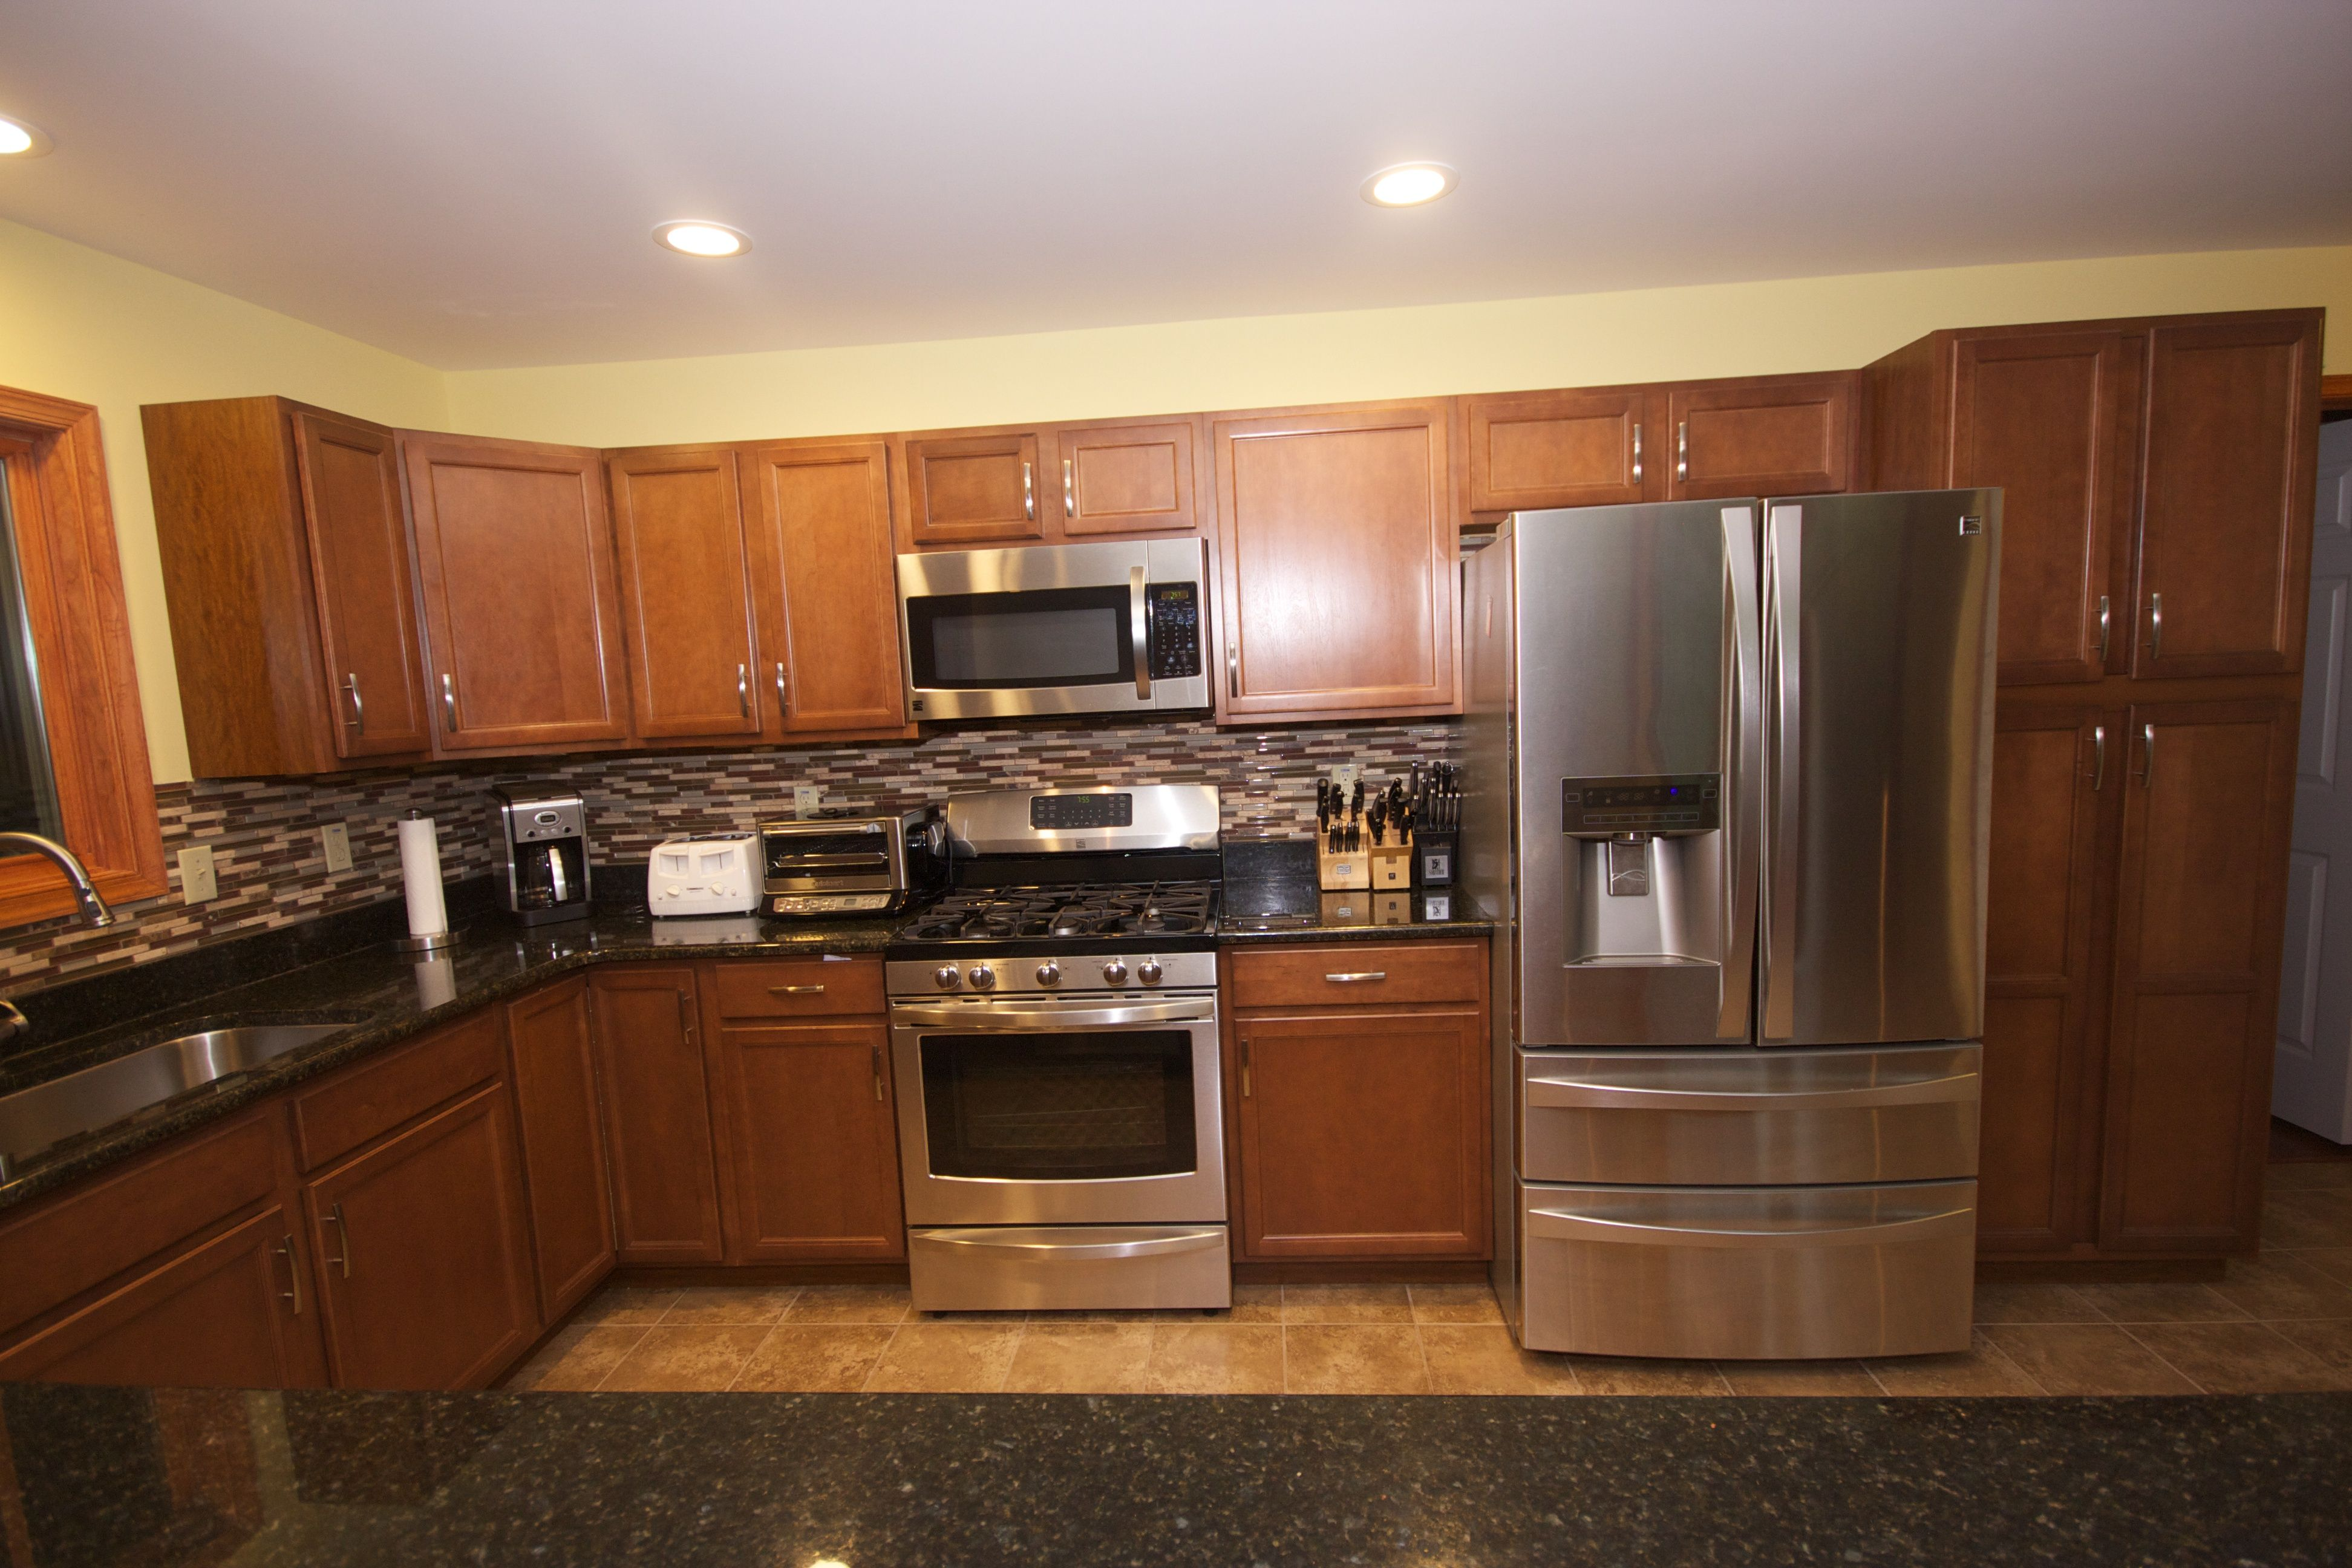 Kitchen featured in the Lakewood By Liberty Homes in Poconos, PA